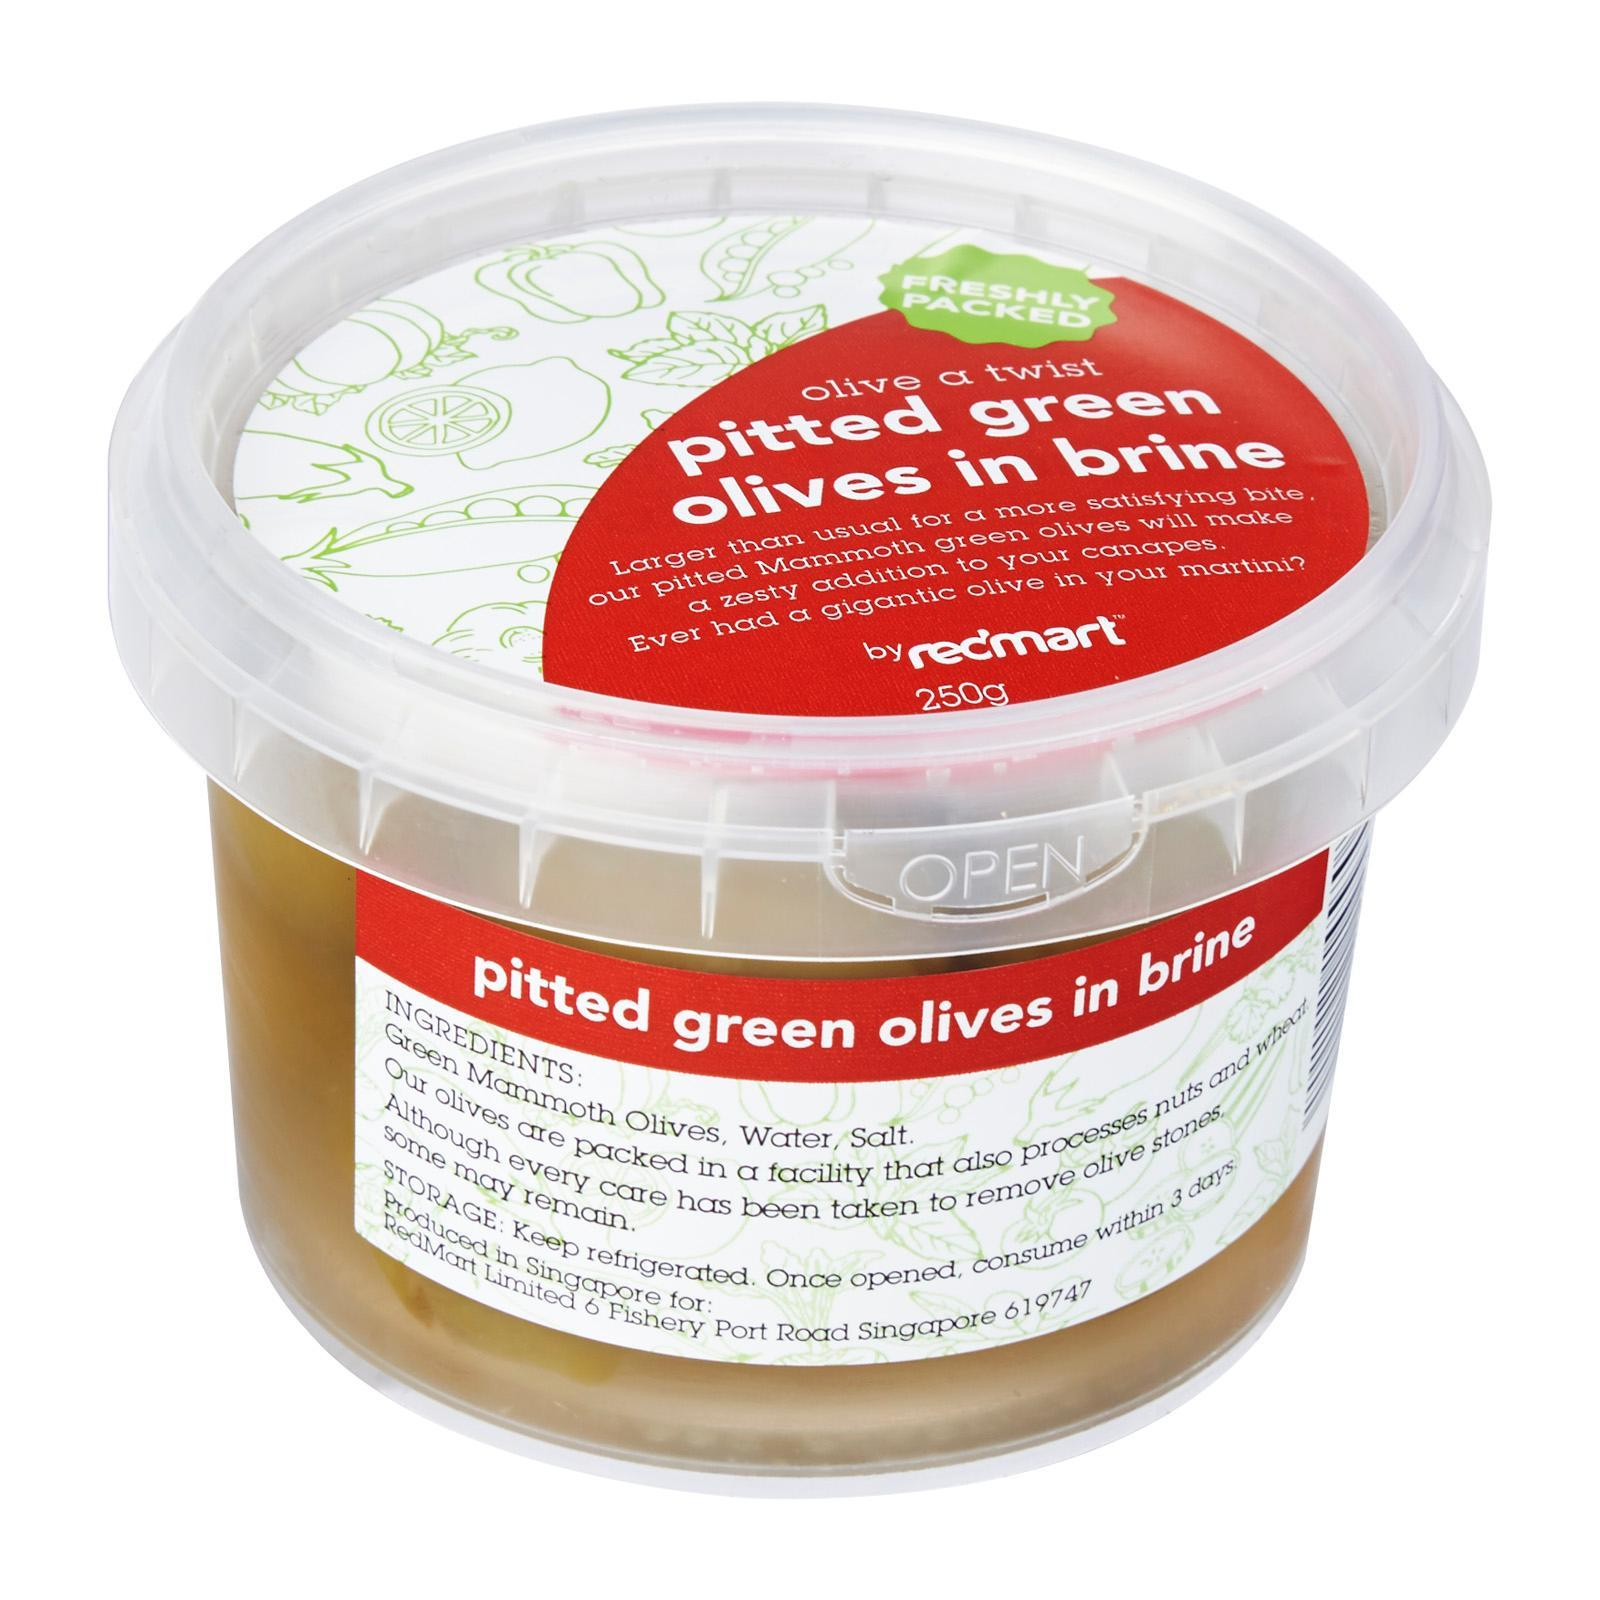 Redmart Pitted Green Olives In Brine By Redmart.